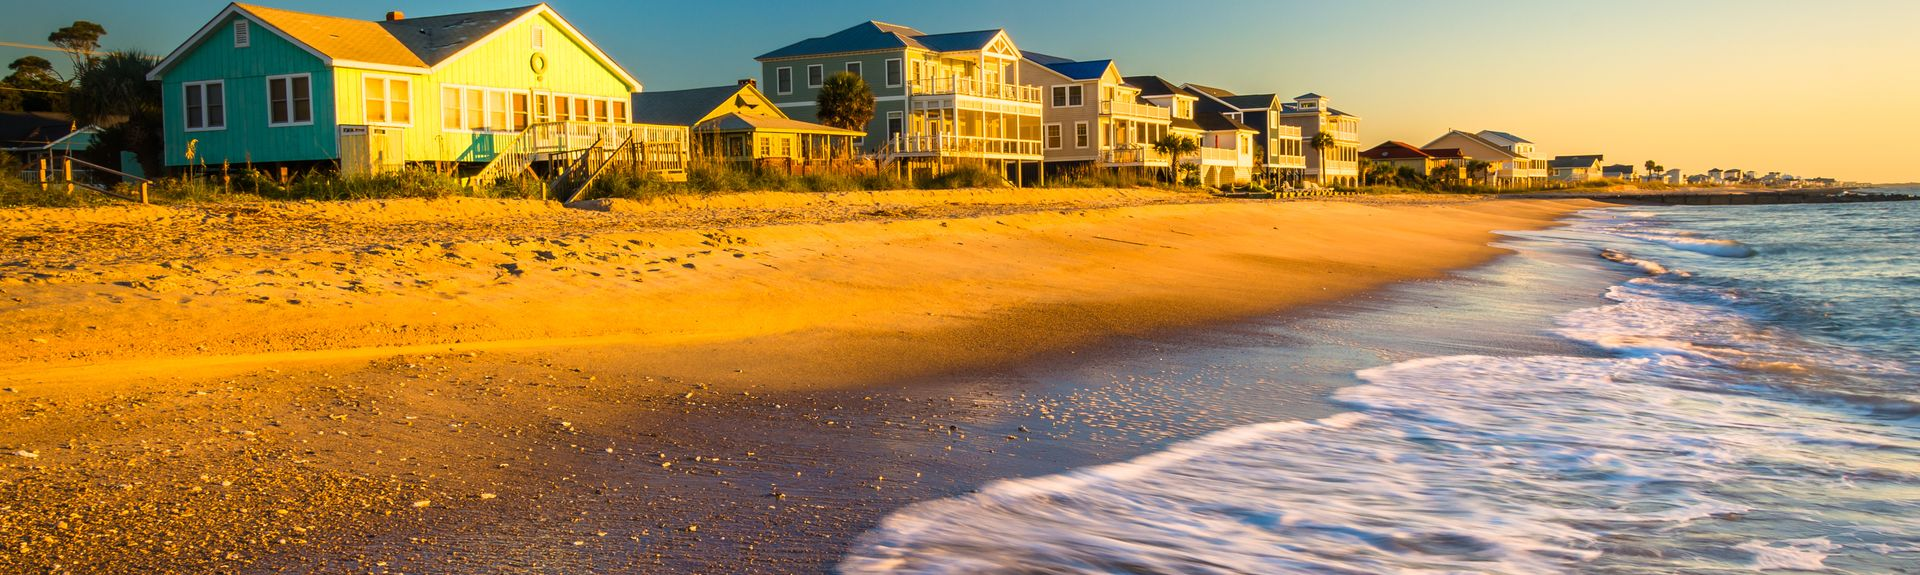 Edisto Island, South Carolina, USA